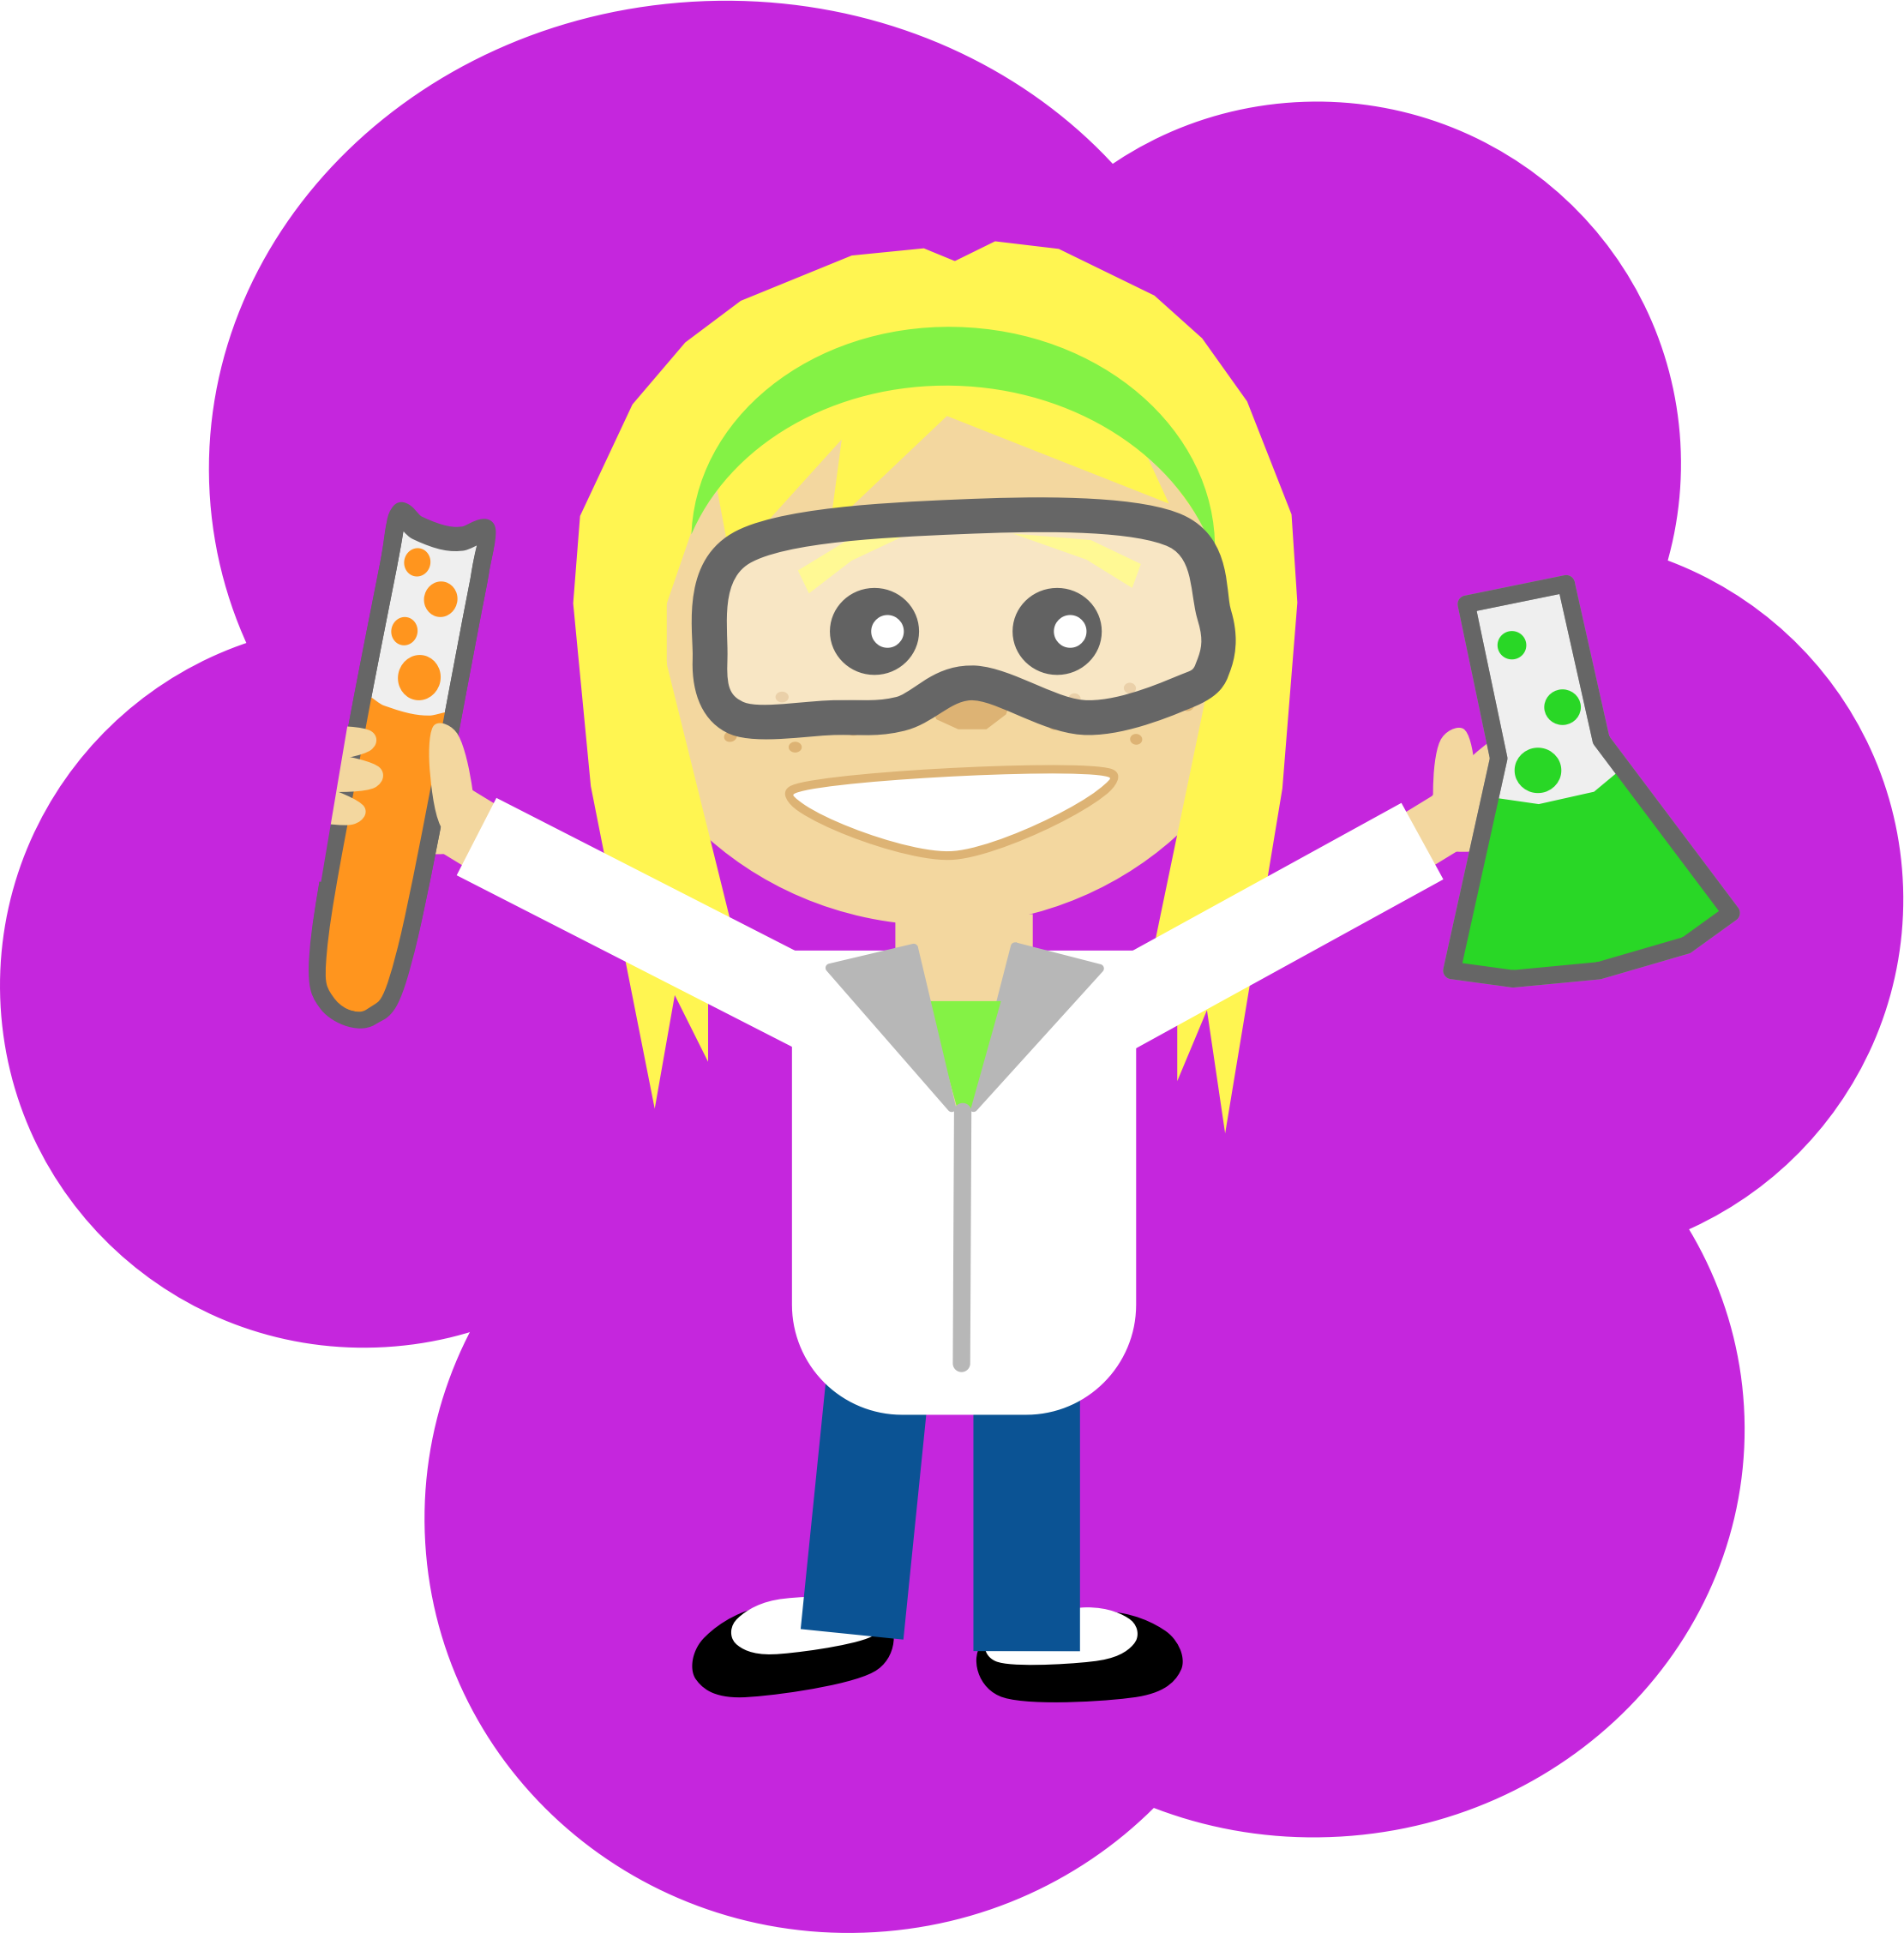 Woman clipart science. Girl big image png